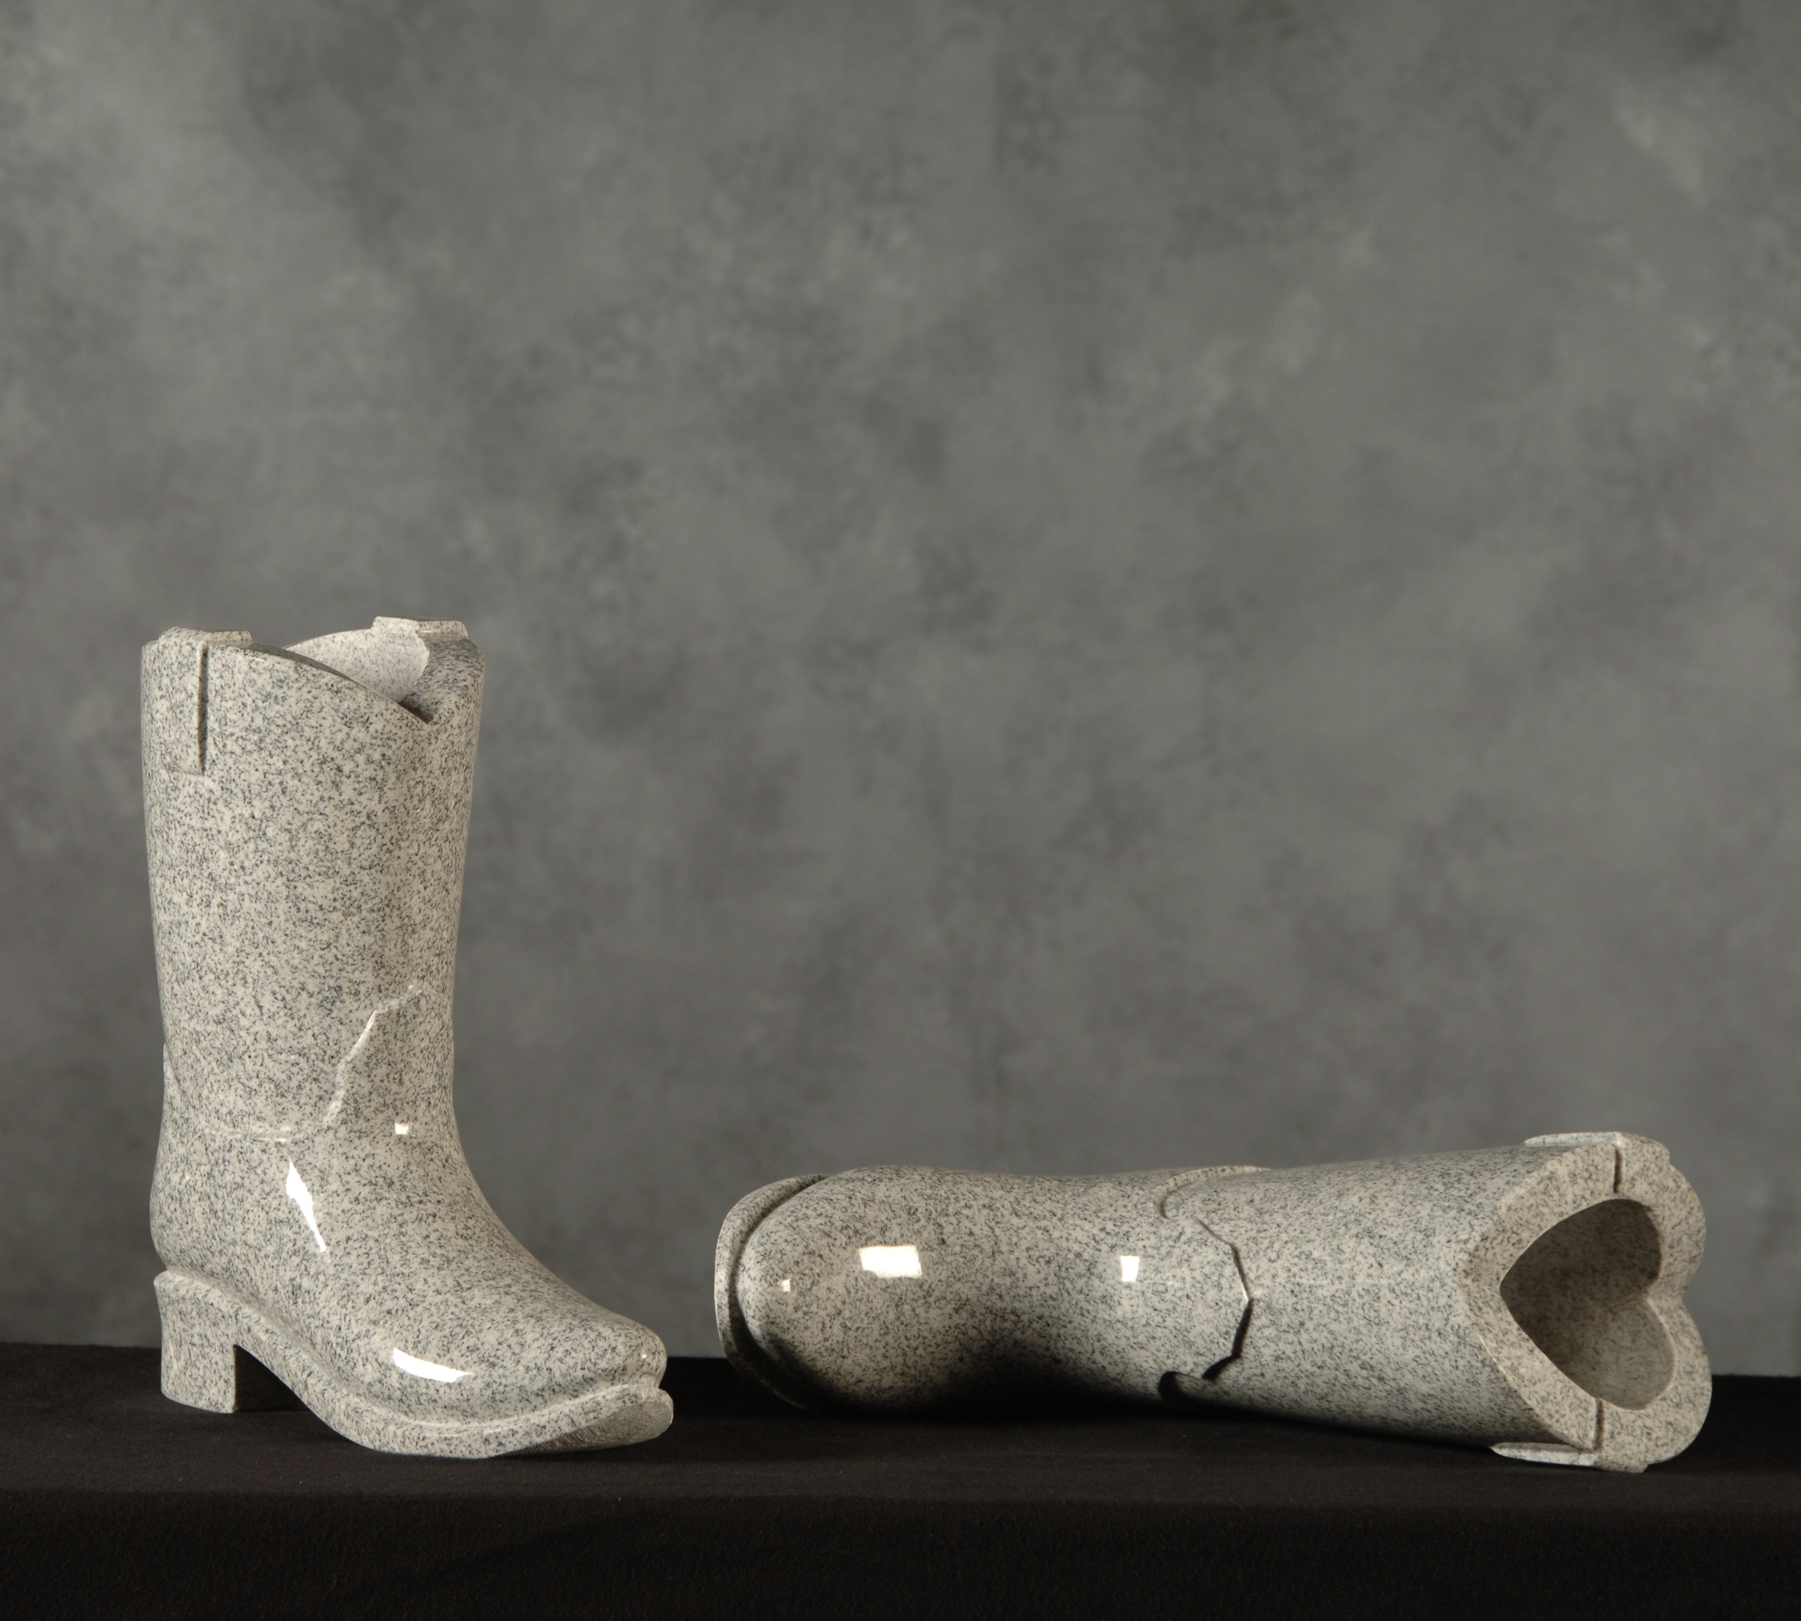 Specialty Flower Vases. Medium Gray Cowboy Boots & Roquemore Marble and Granite | Specialty Flower Vases